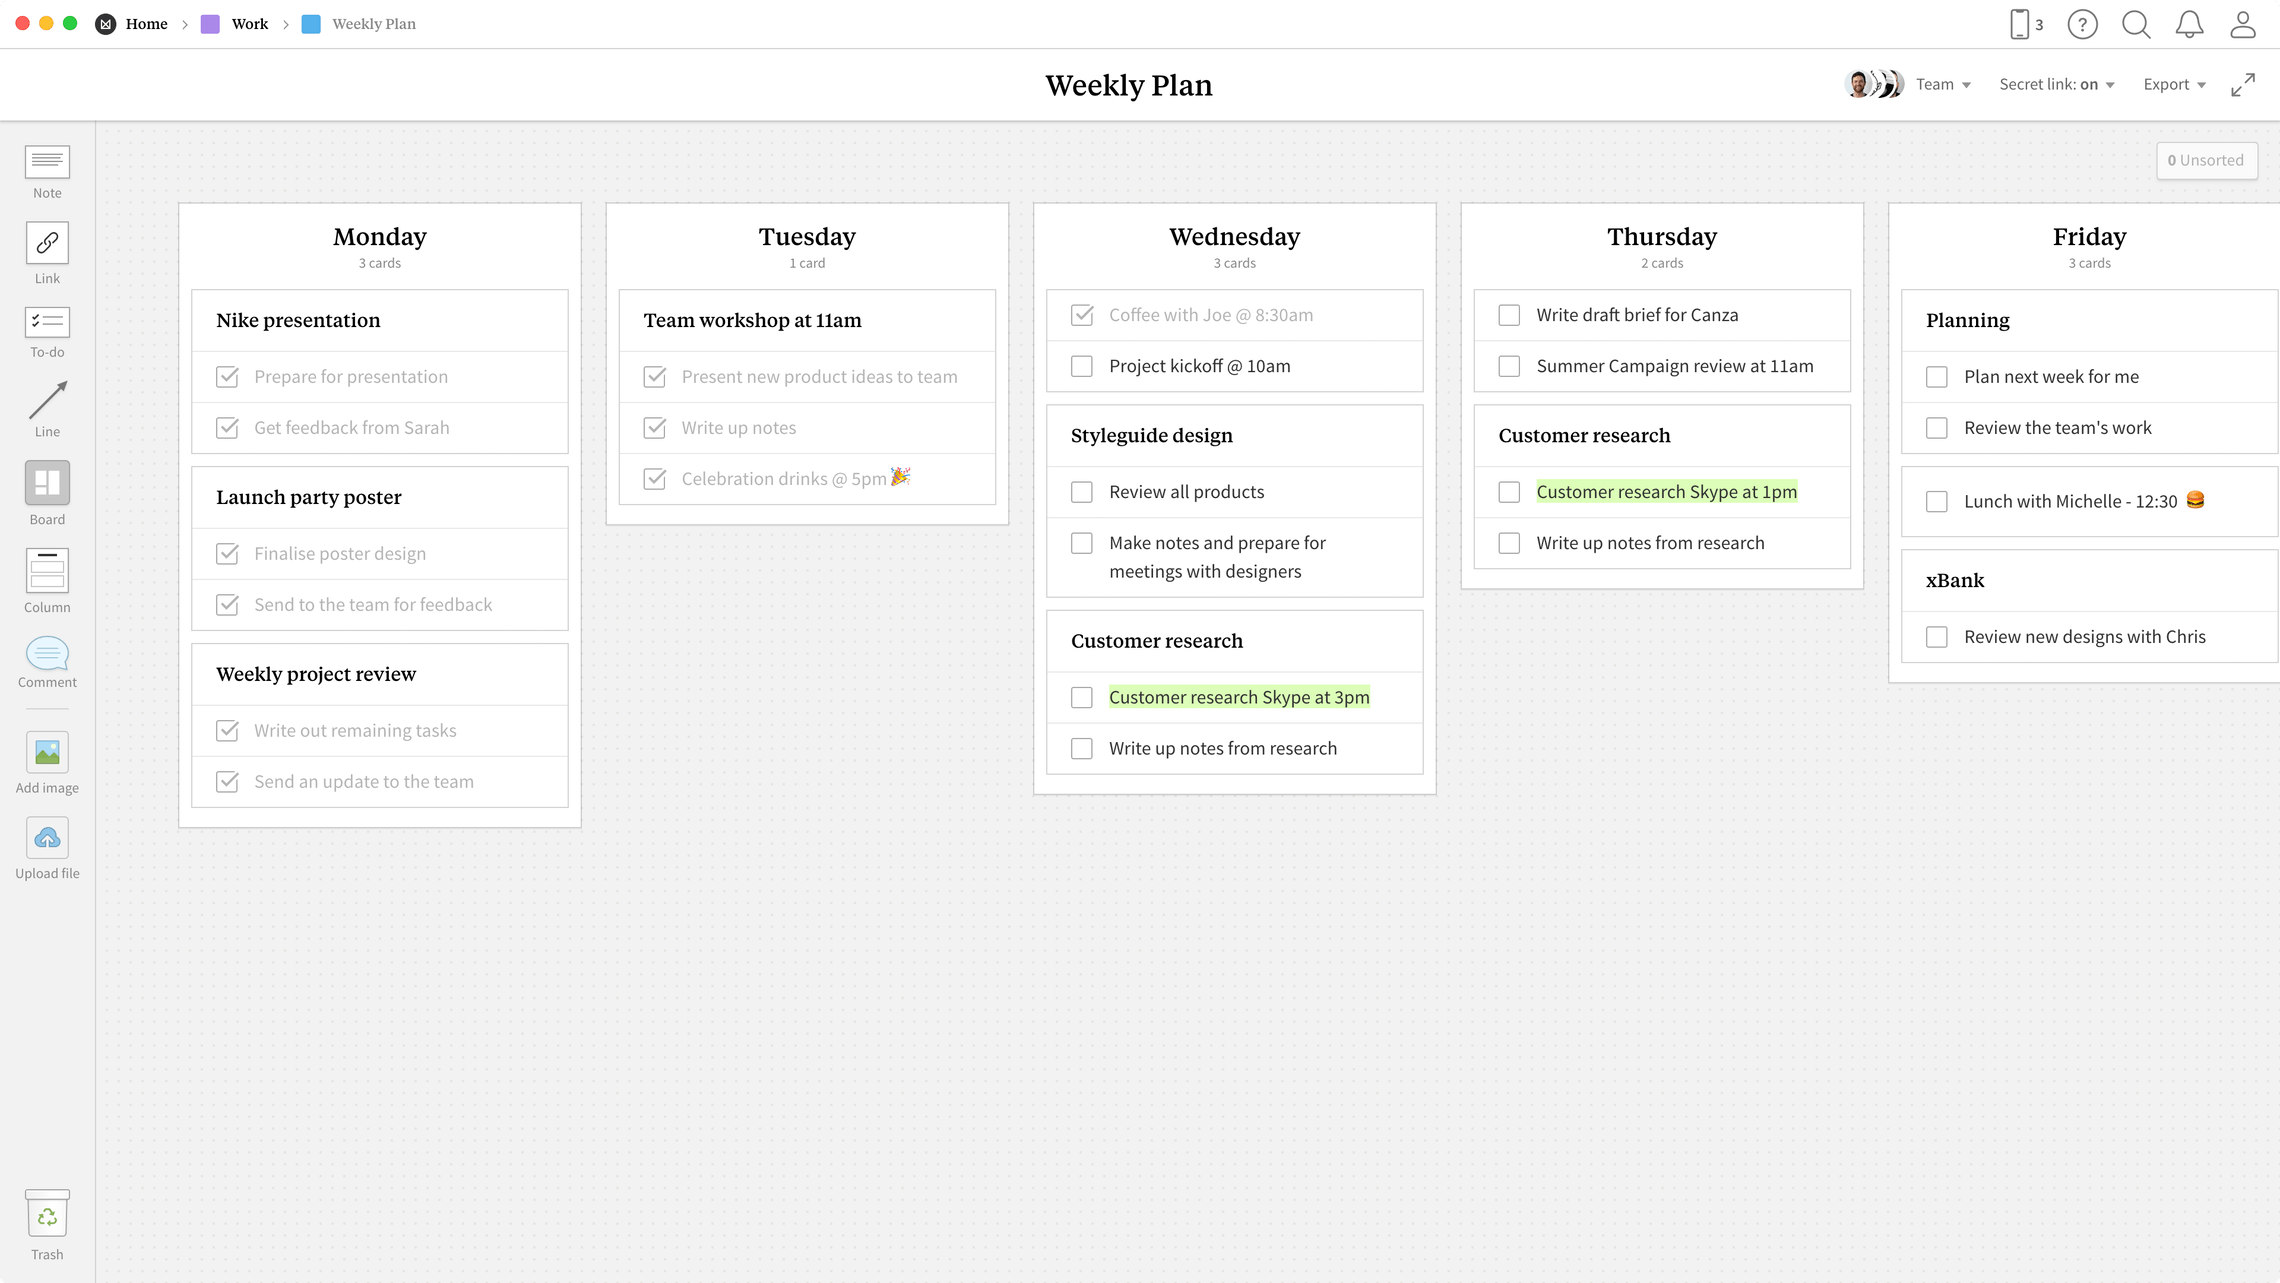 Weekly Plan Template, within the Milanote app